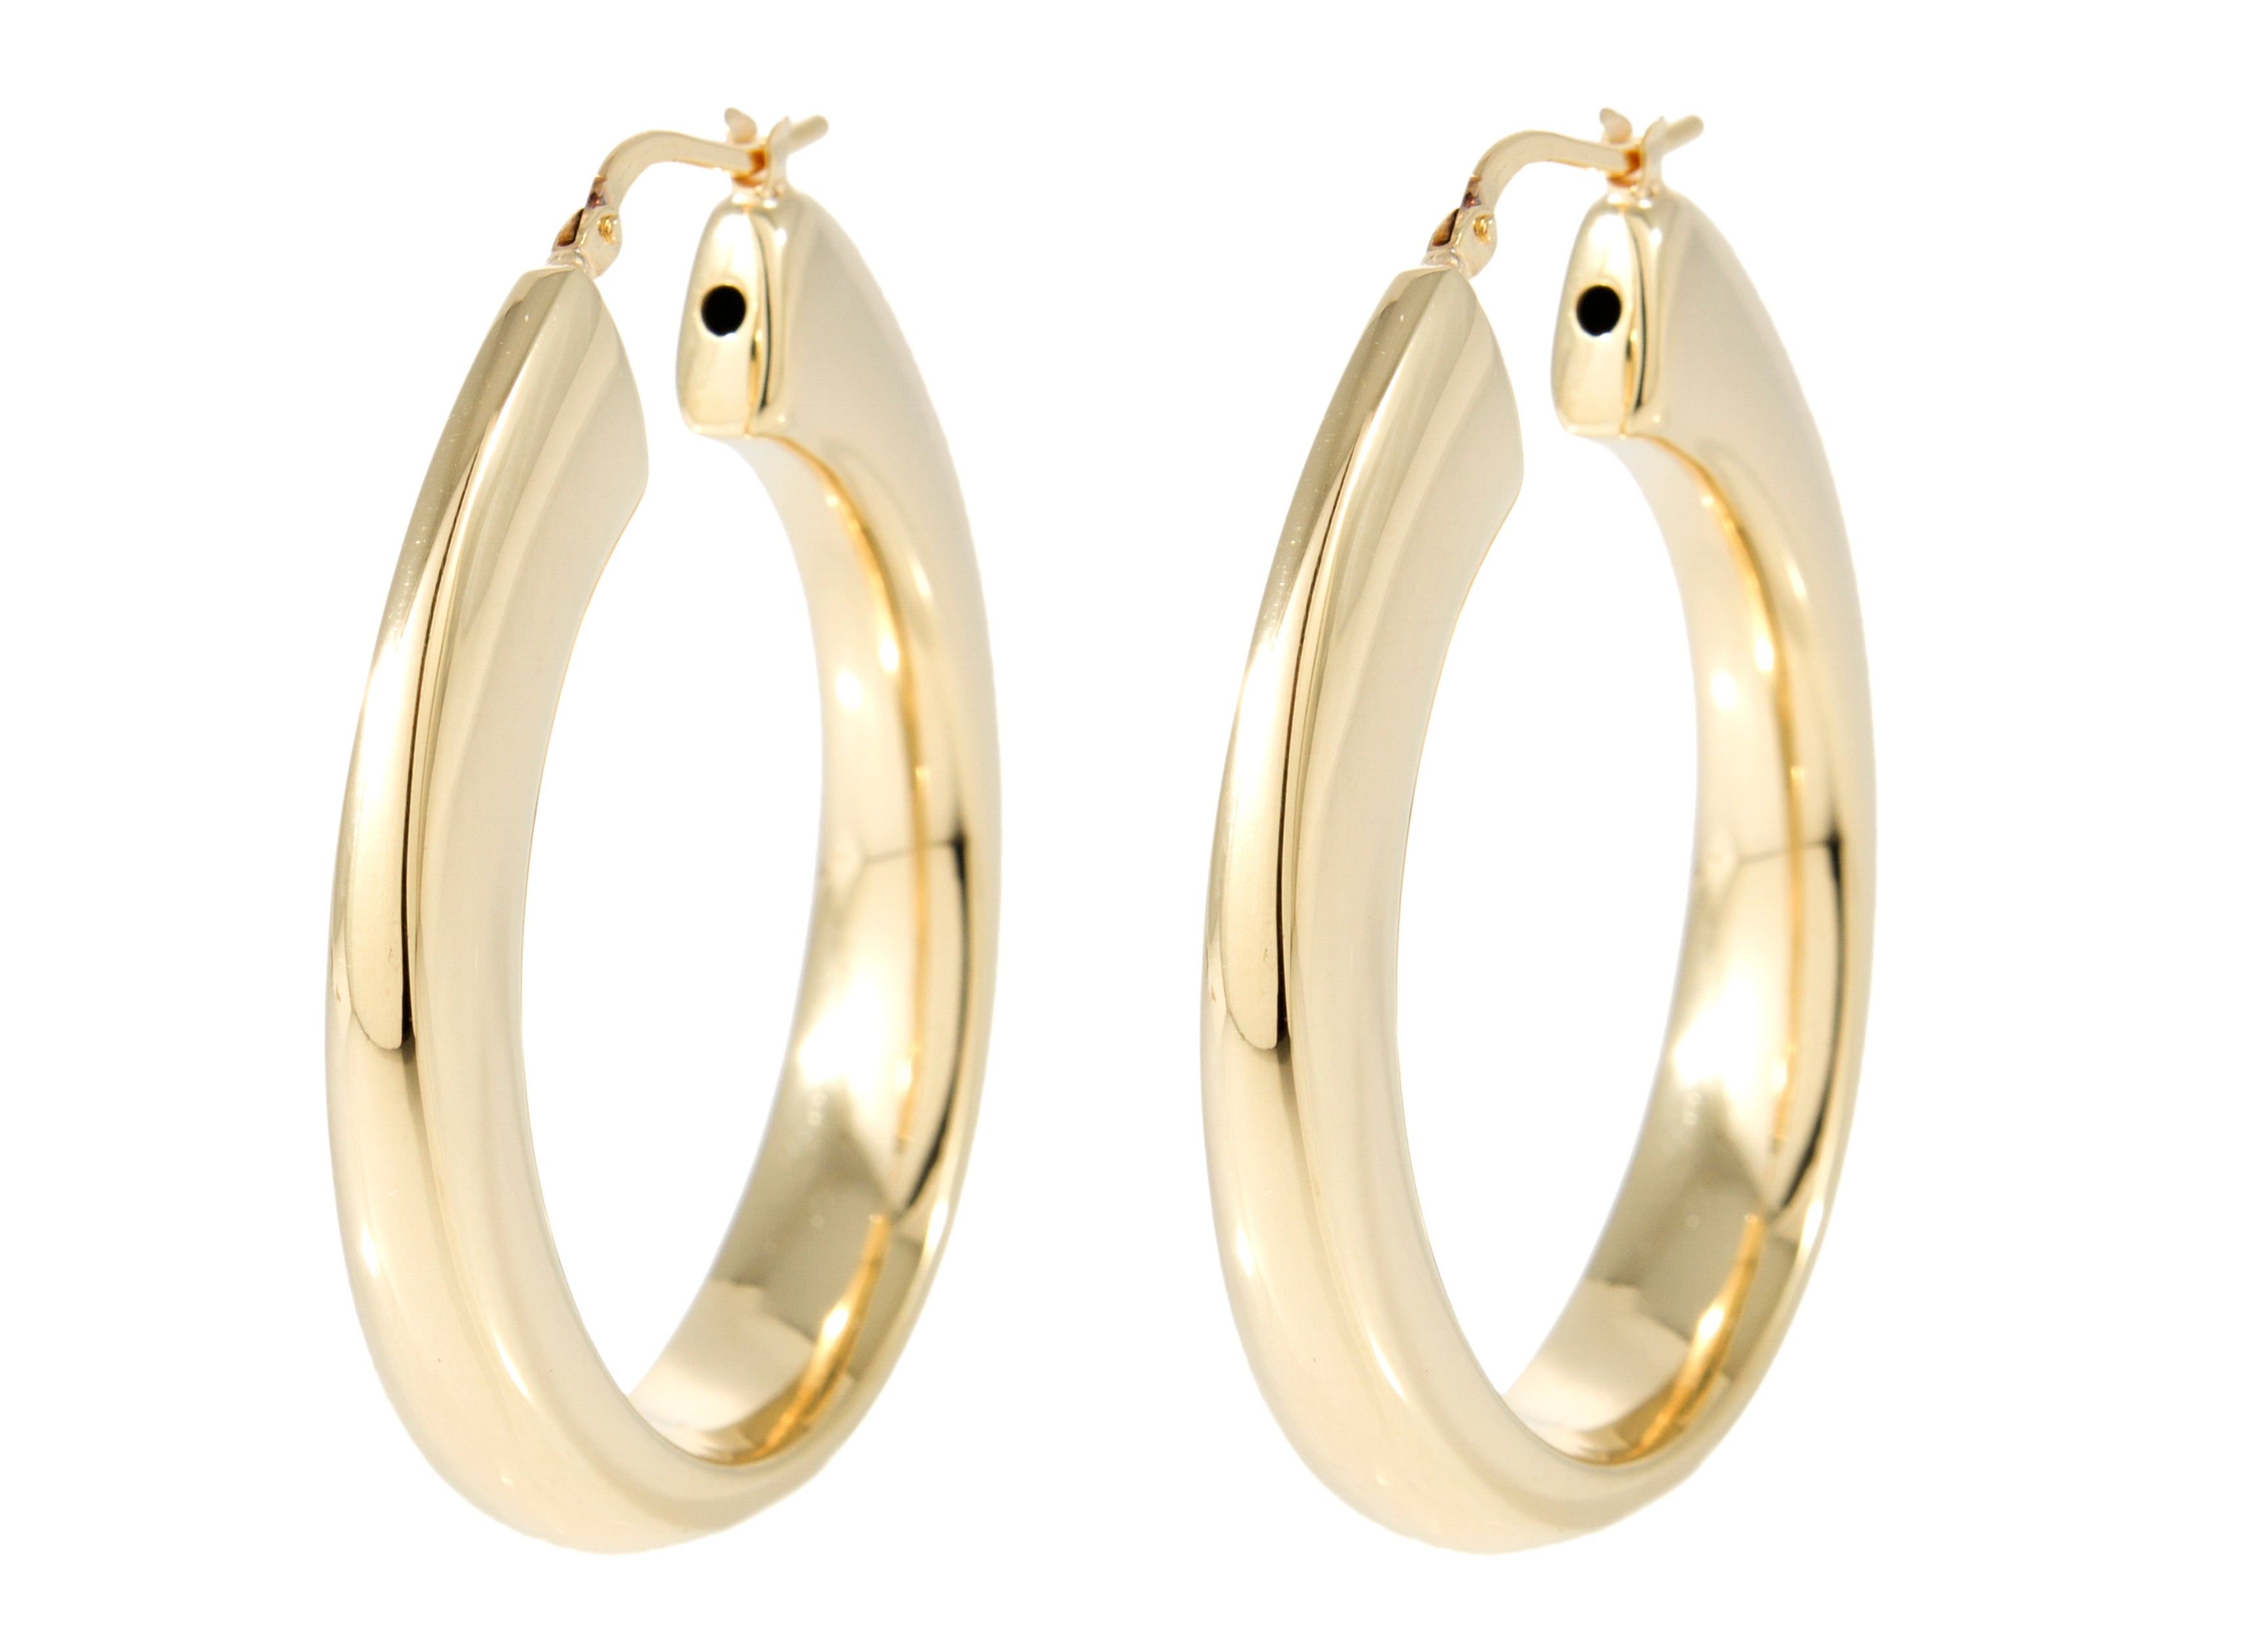 Forever Last 18k Gold Plated Women's Yellow Plated Hinged Hoop Earrings